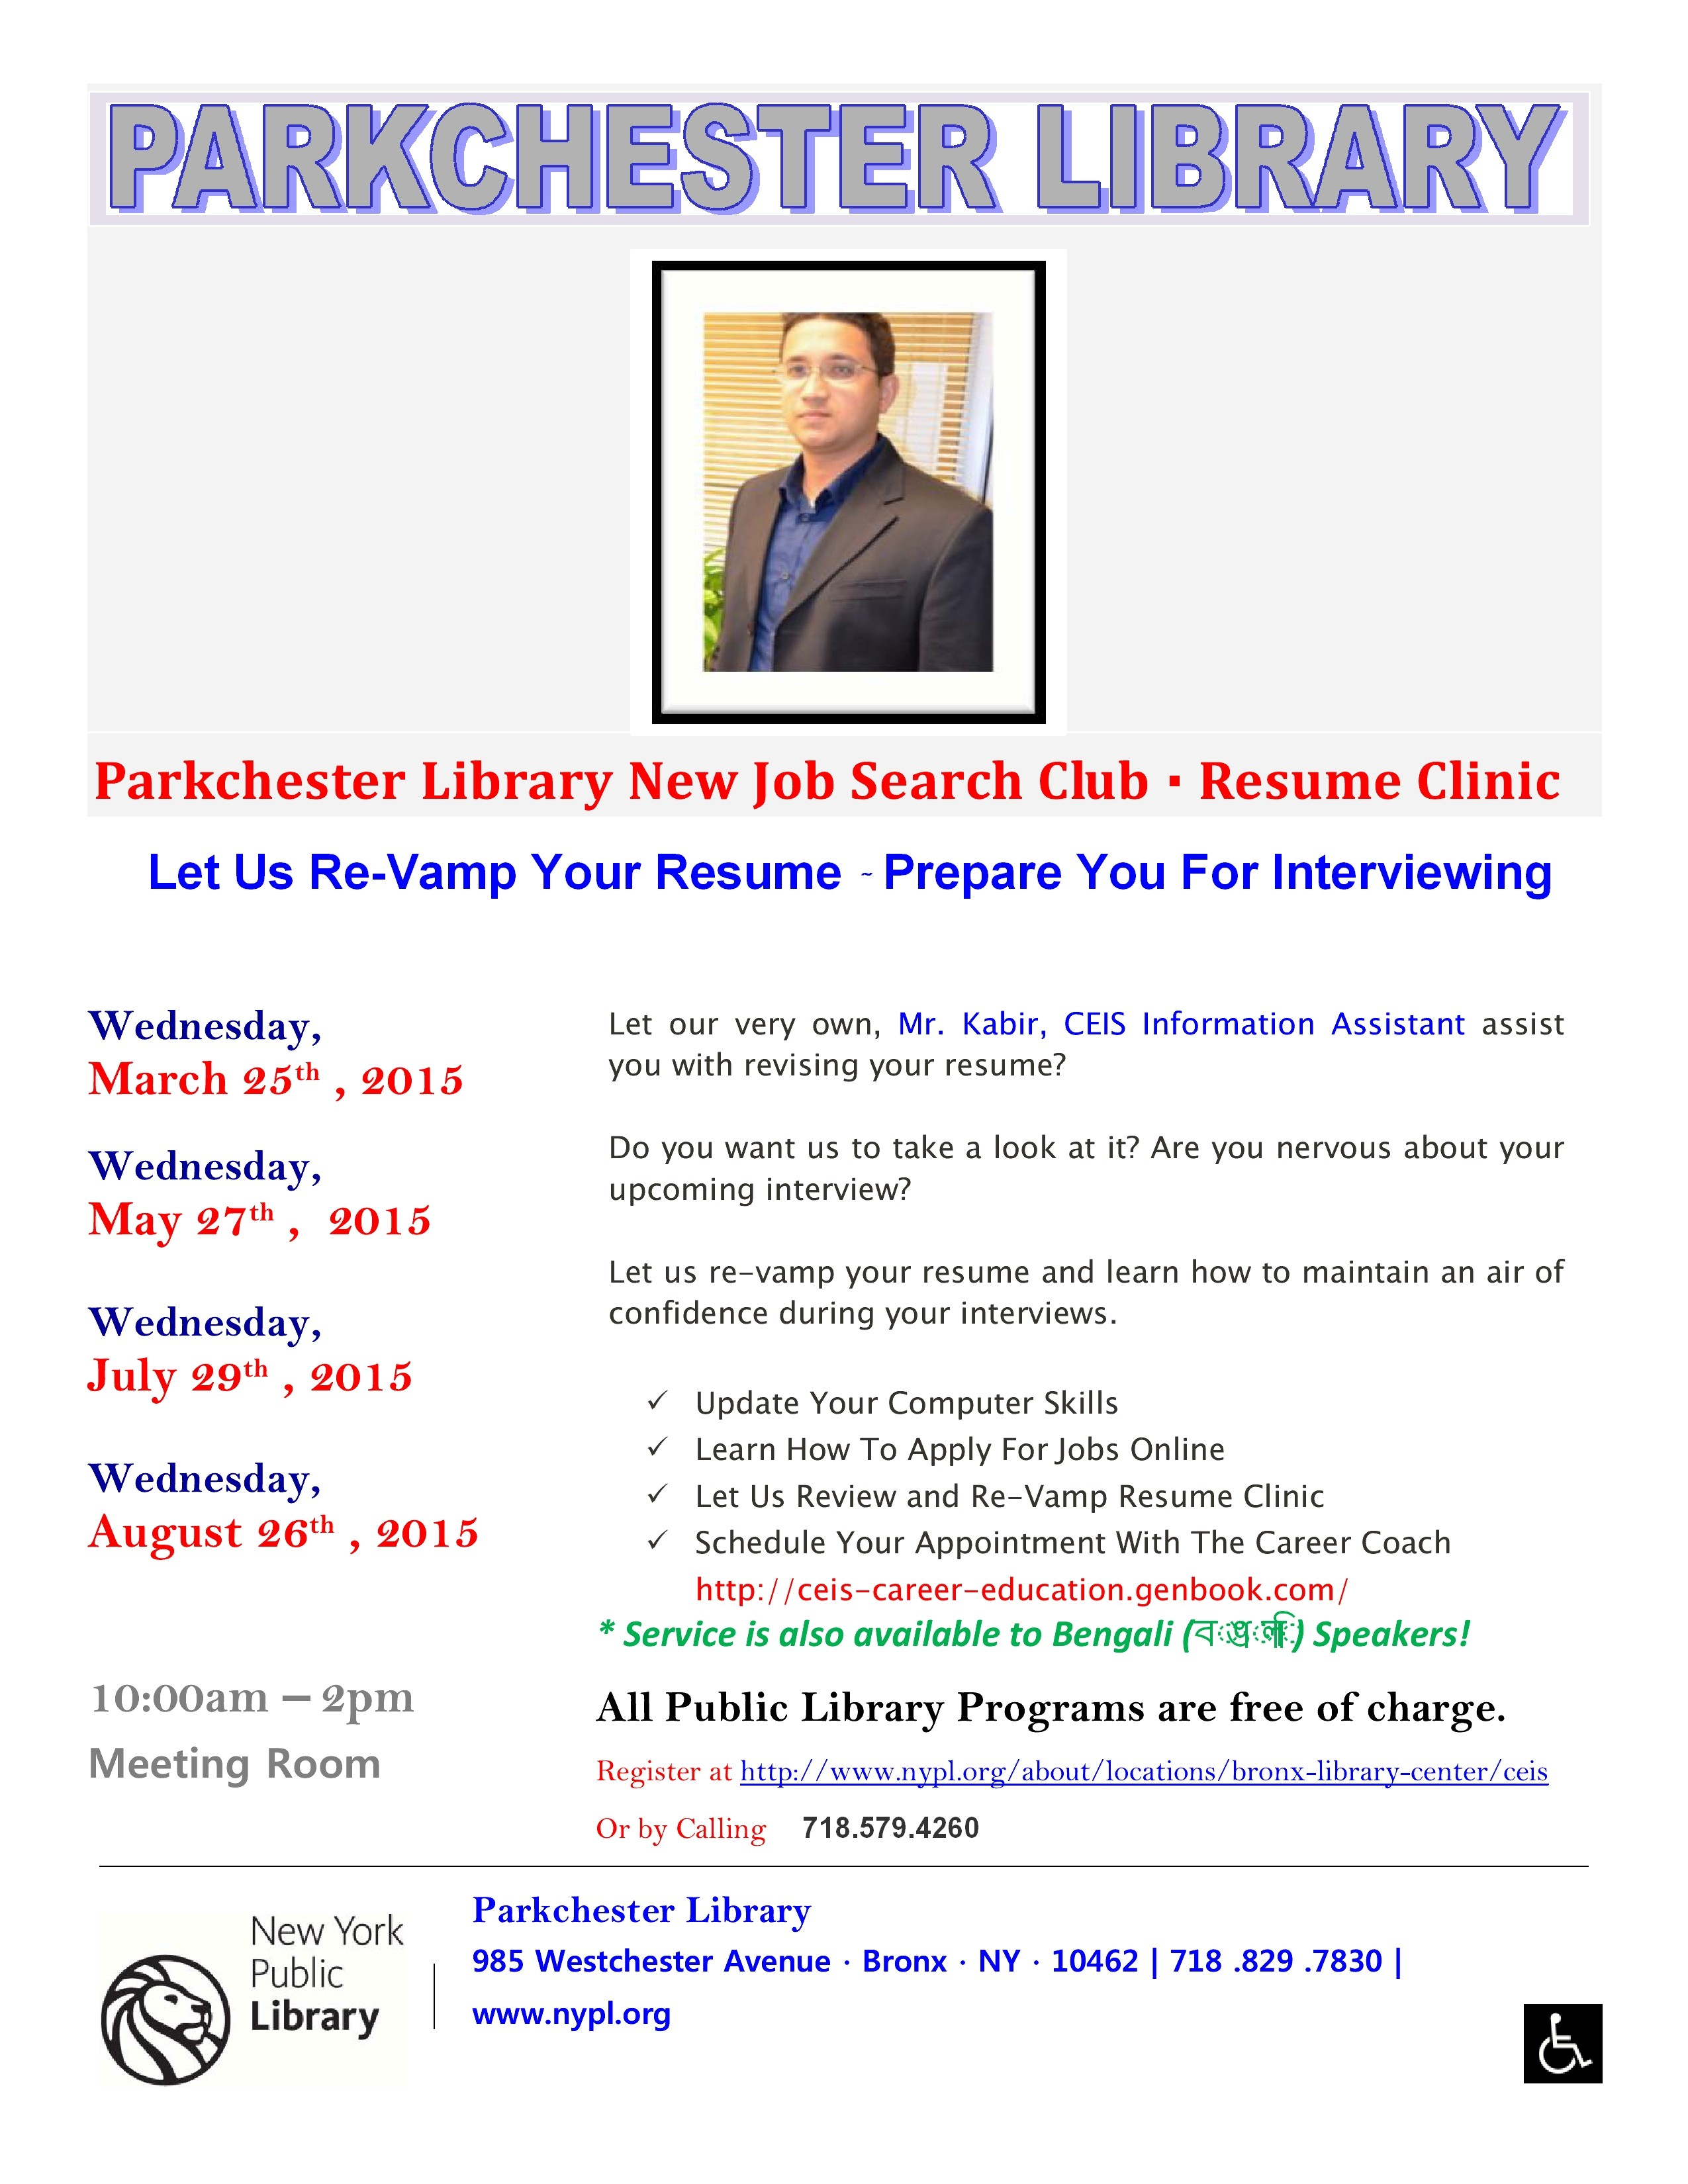 job workshop parkchester  library flyer -march- may-july-aug 2015-001